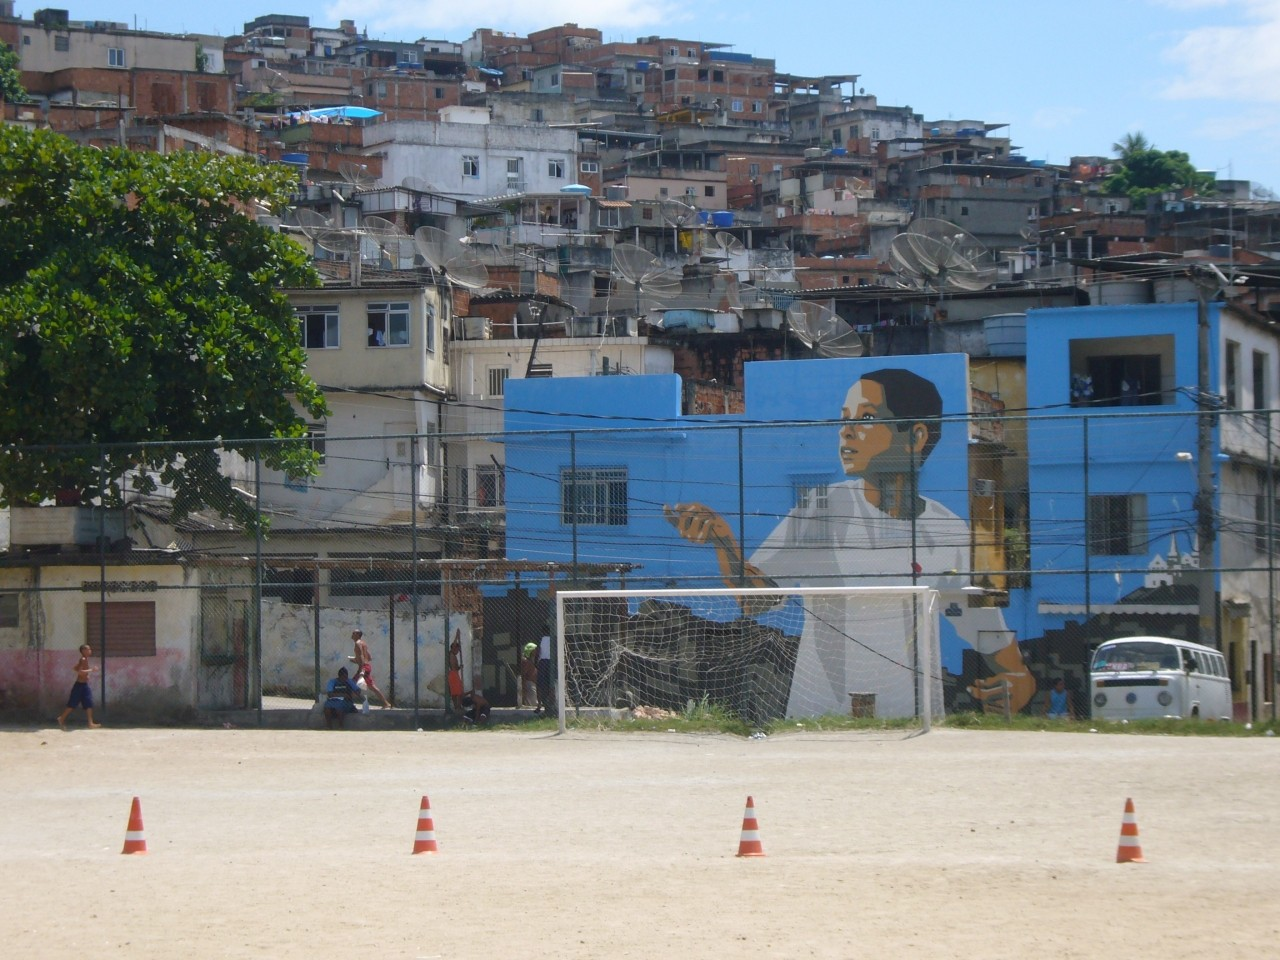 The first favela painting